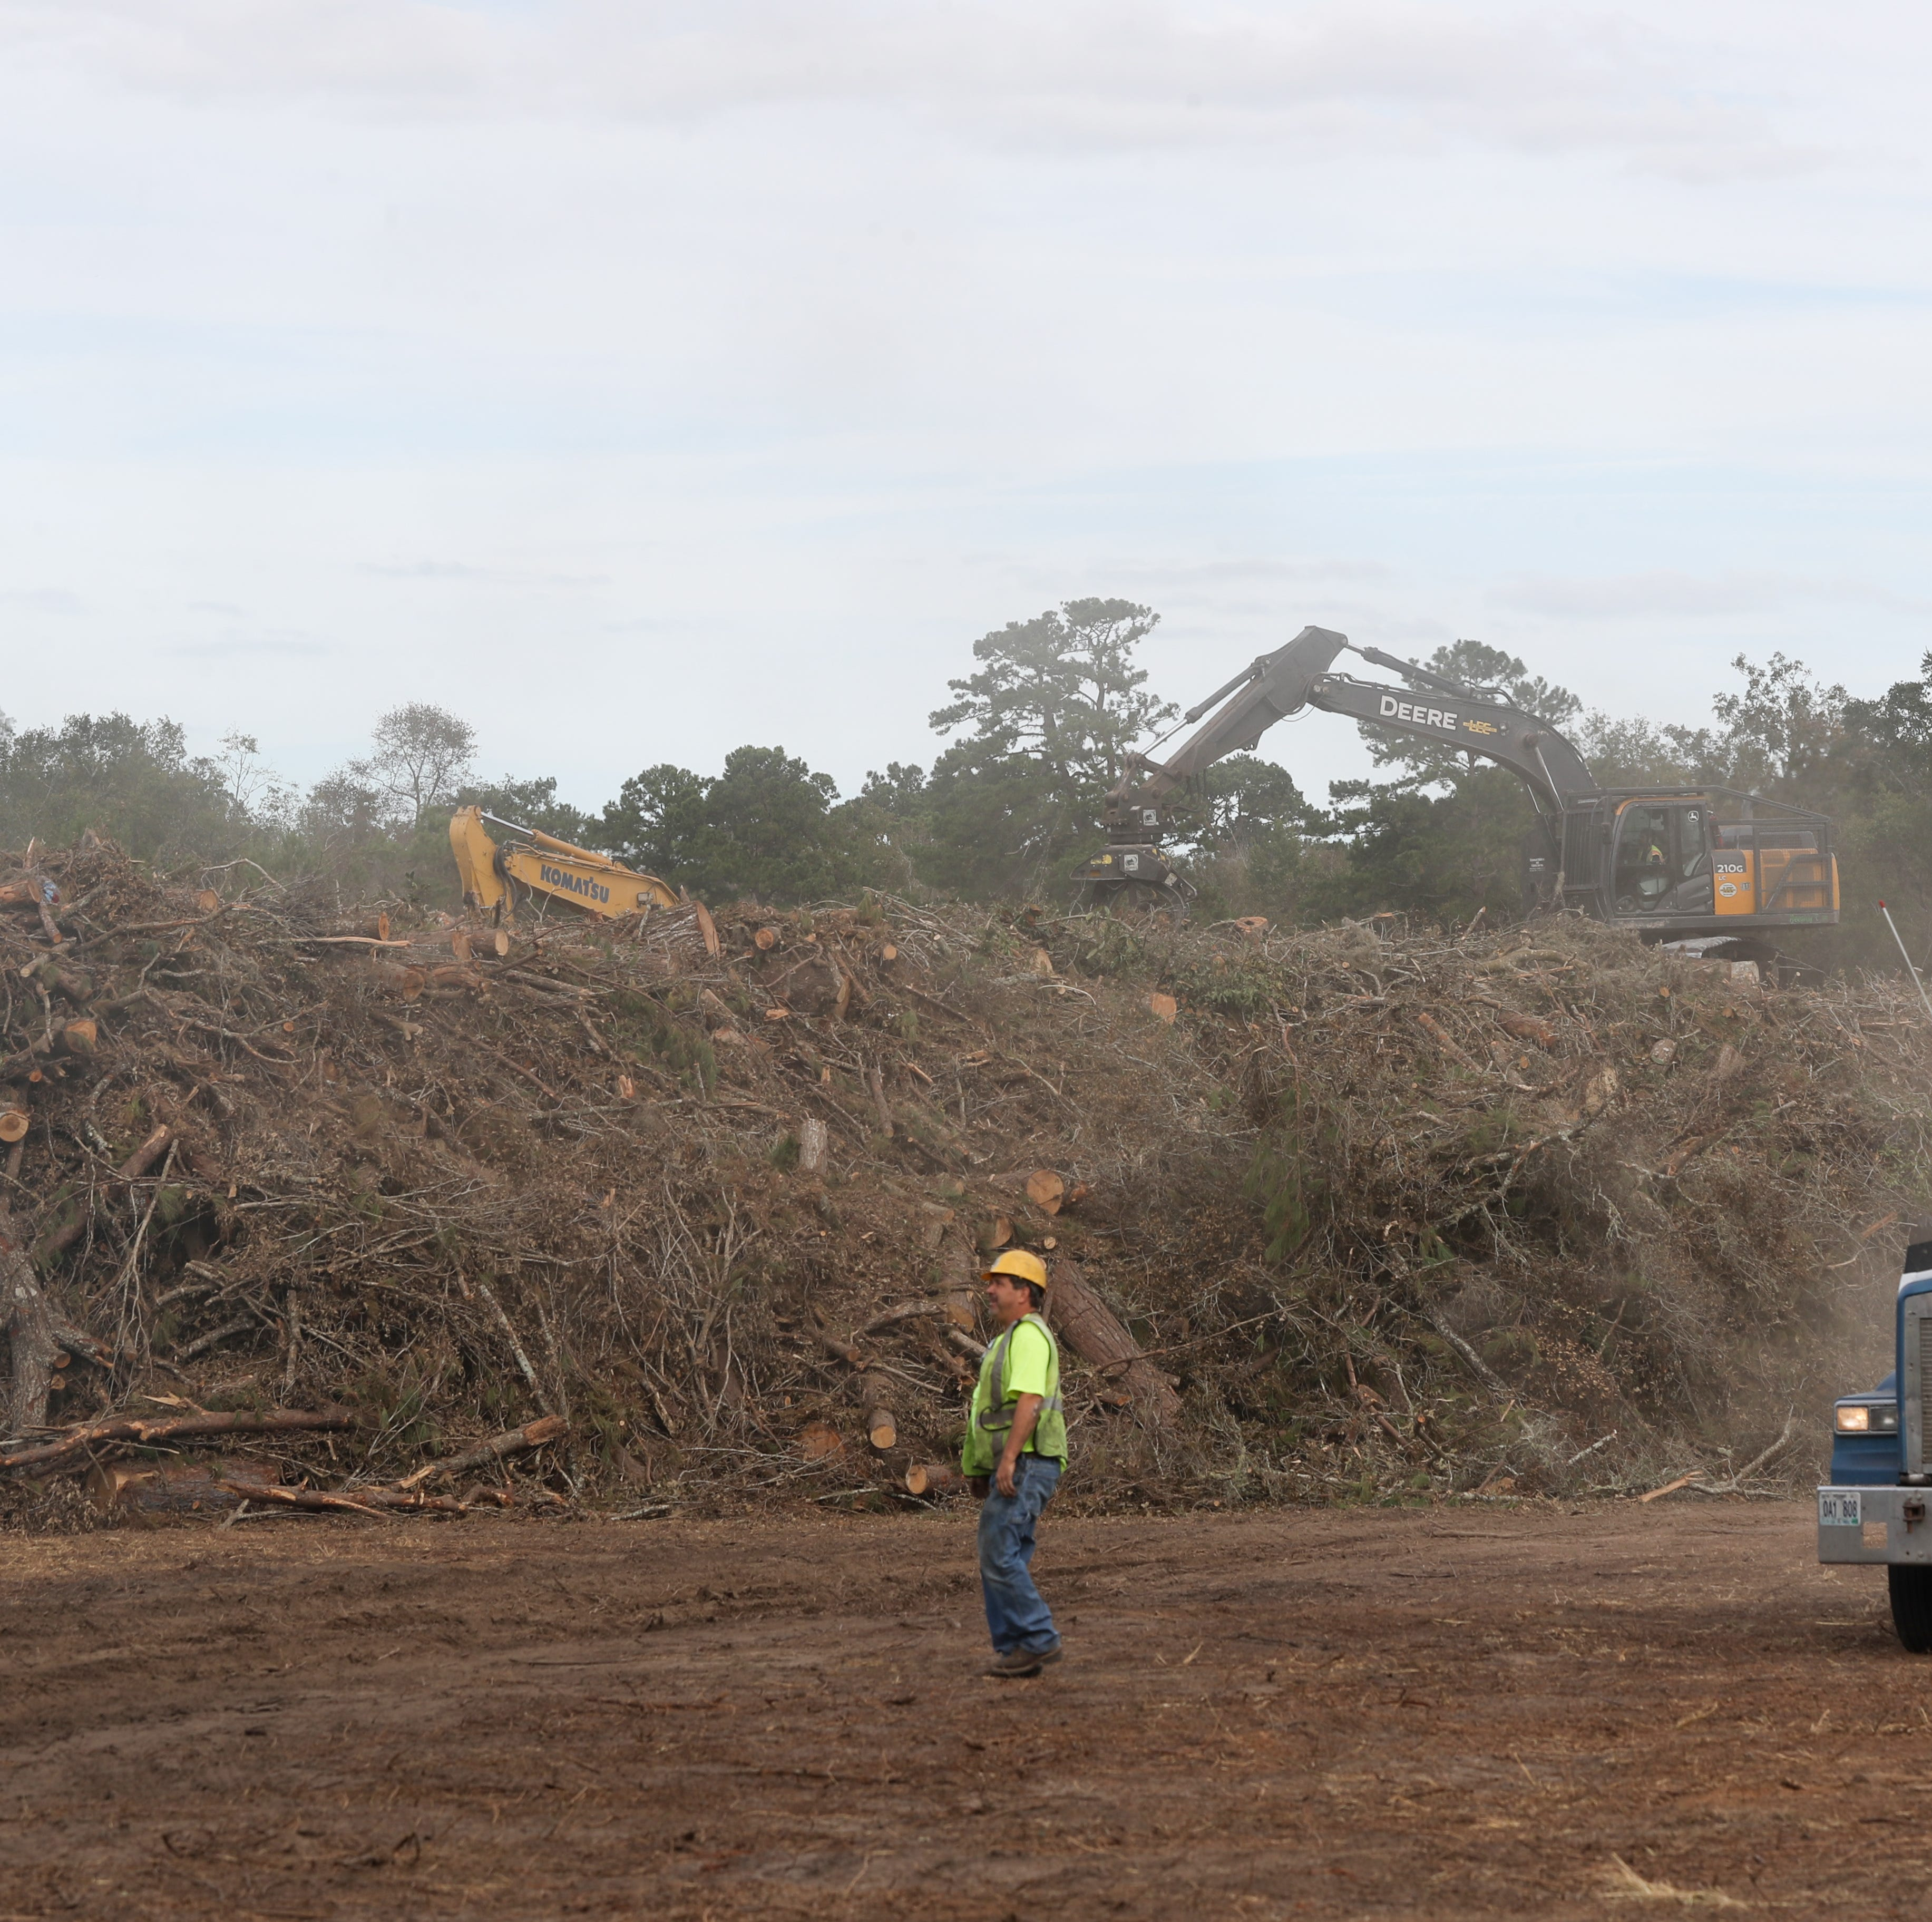 Leon County's Hurricane Michael debris clean-up efforts may last past Thanksgiving